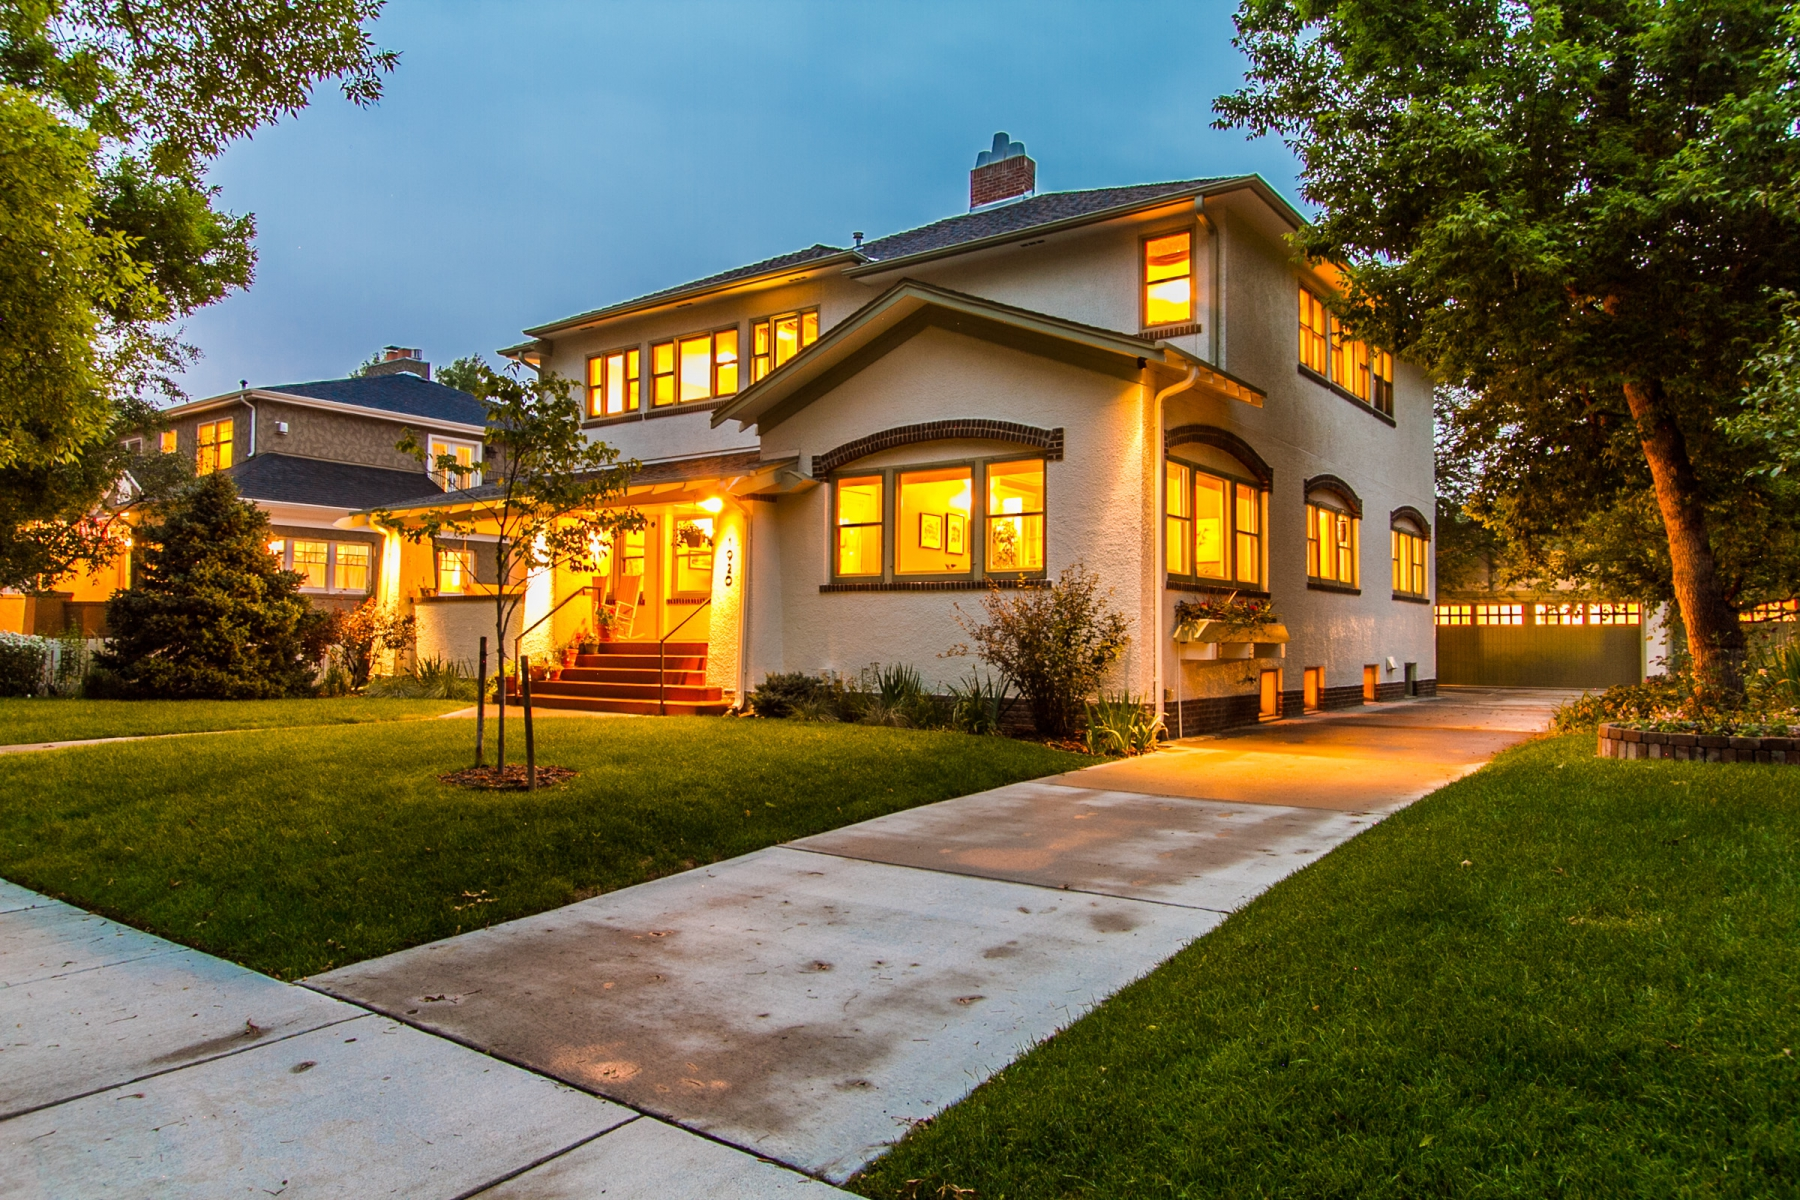 Single Family Home for Sale at Luxurious Mission Revival in Park Hil 1920 Holly Street Denver, Colorado 80220 United States